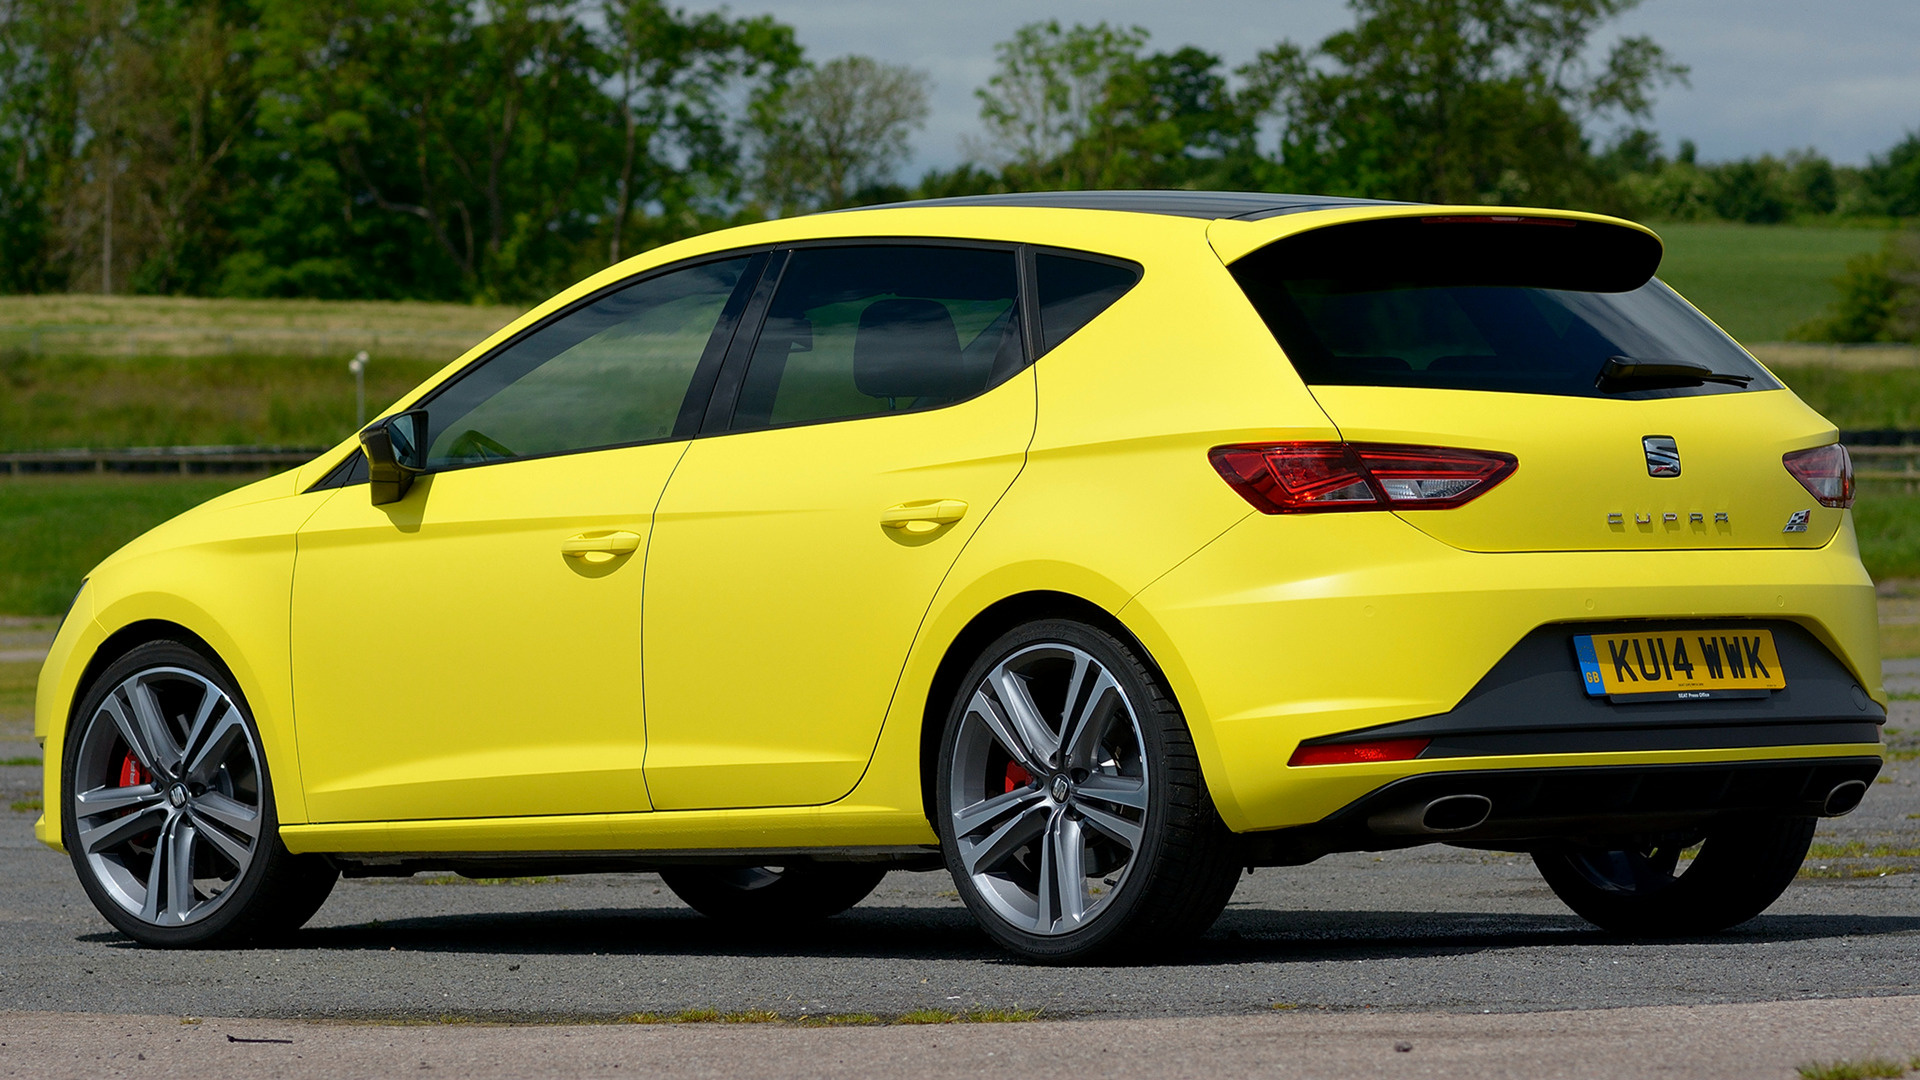 seat leon cupra 280 2014 uk wallpapers and hd images. Black Bedroom Furniture Sets. Home Design Ideas